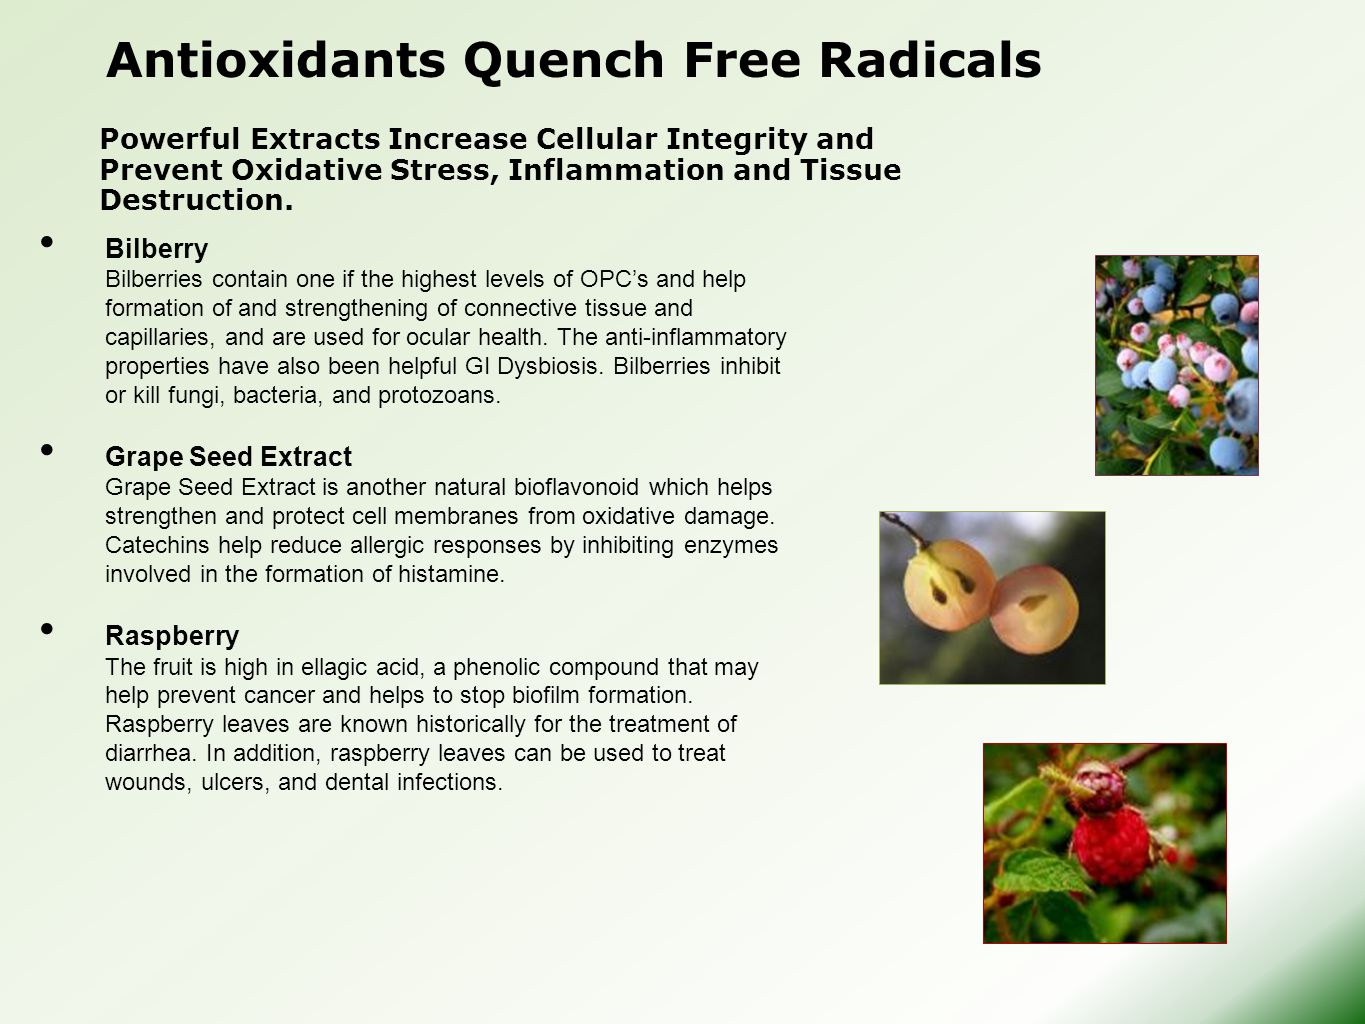 Antioxidants Quench Free Radicals Bilberry Bilberries contain one if the highest levels of OPC's and help formation of and strengthening of connective